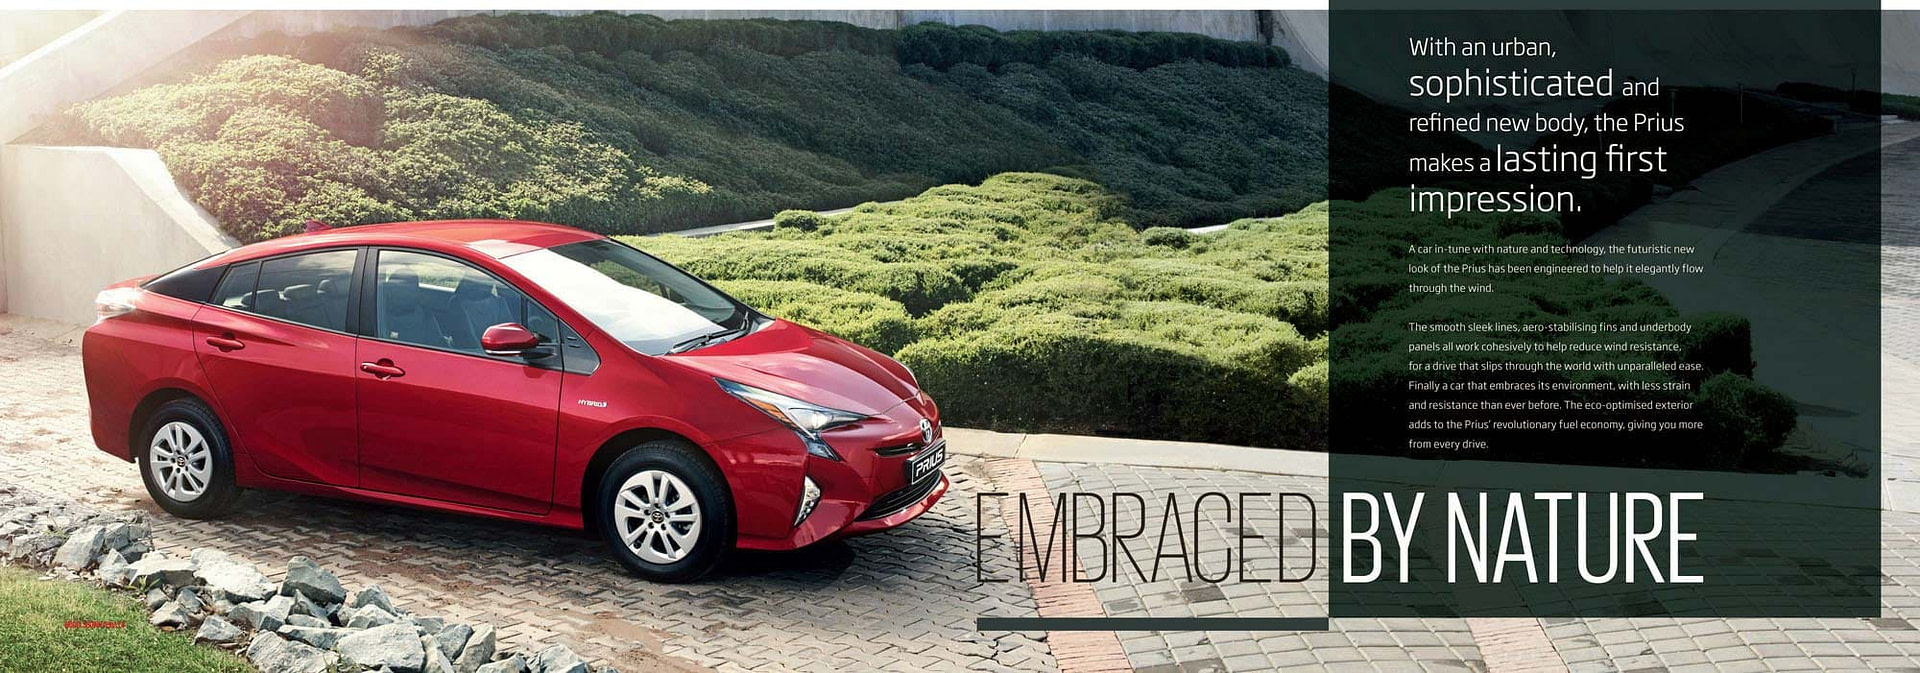 Toyota Prius Editorial Automotive Photography campaign shot for m&c saatchi and able south africa